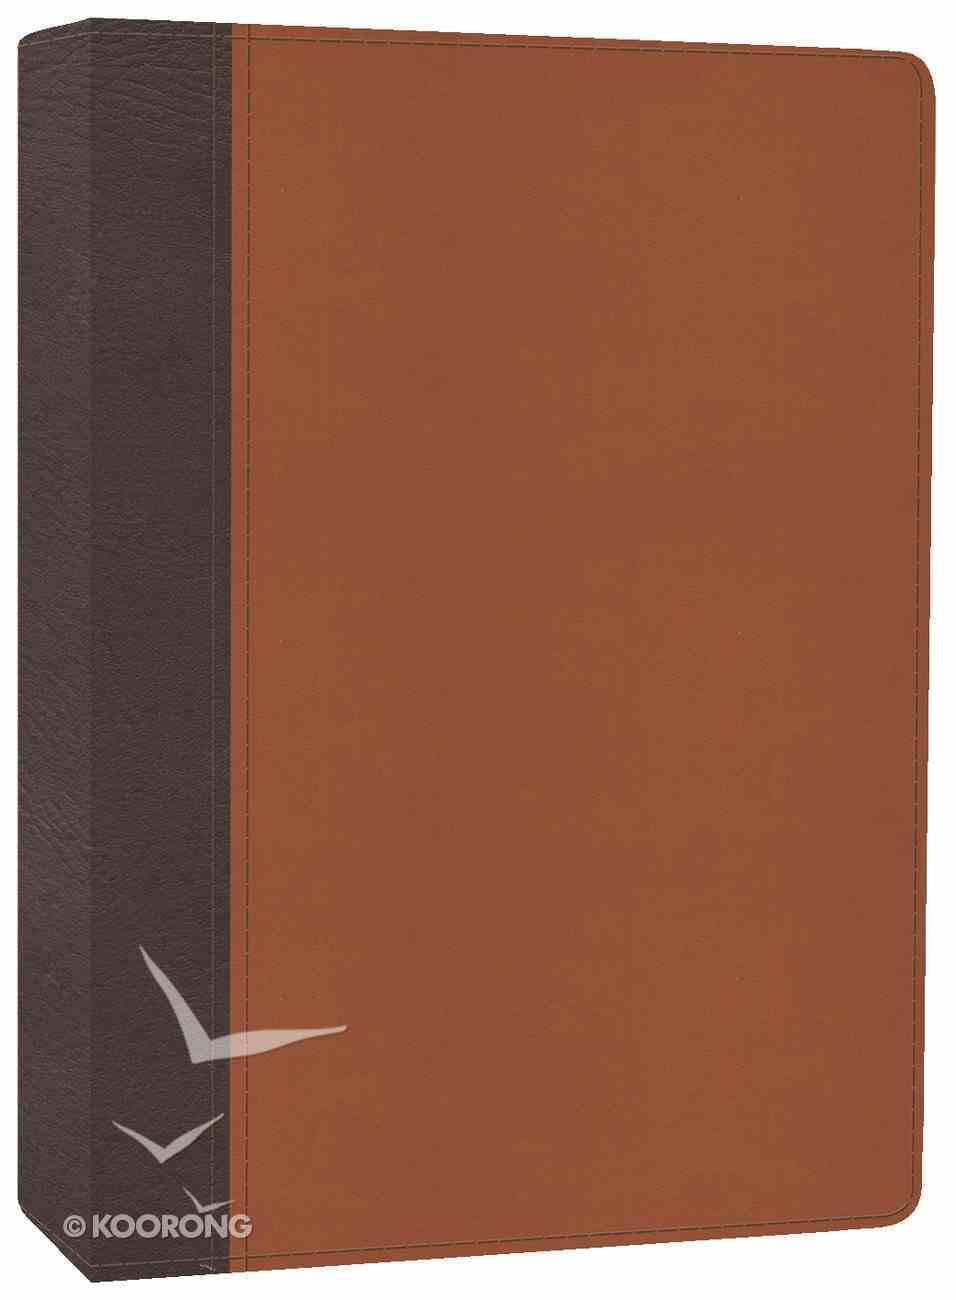 HCSB the Mission of God Study Bible Brown/Tan Imitation Leather